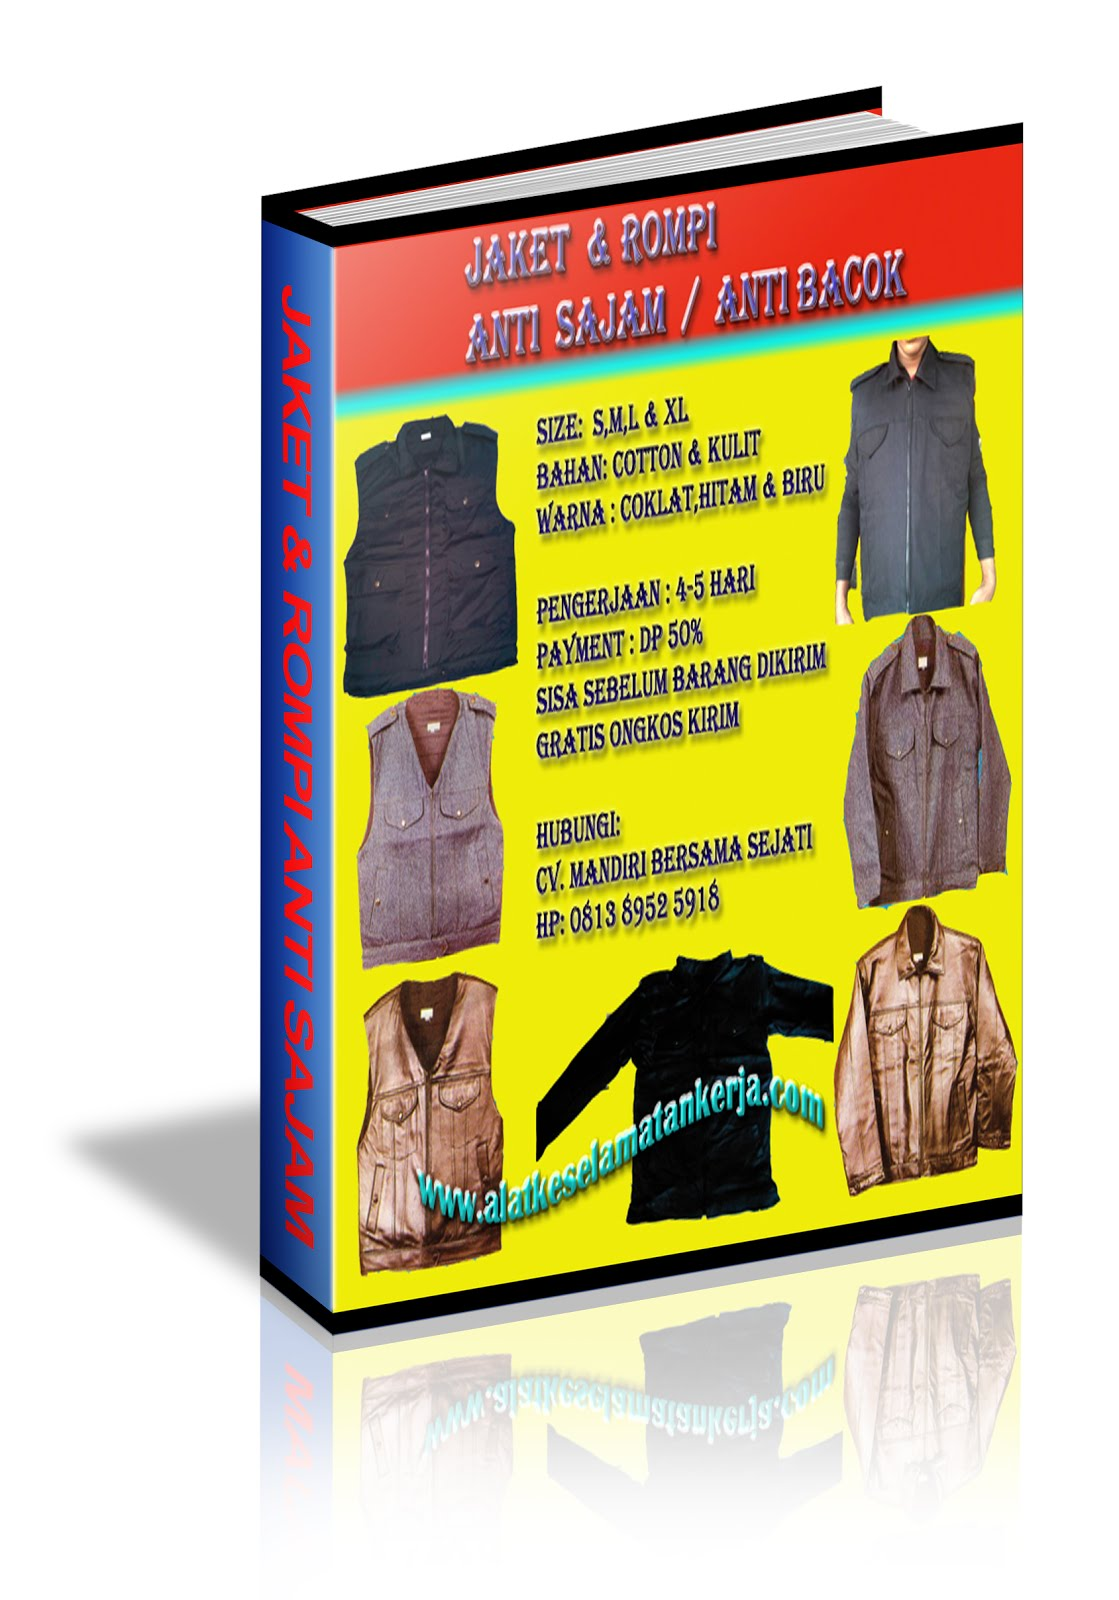 JAKET ANTI SAJAM